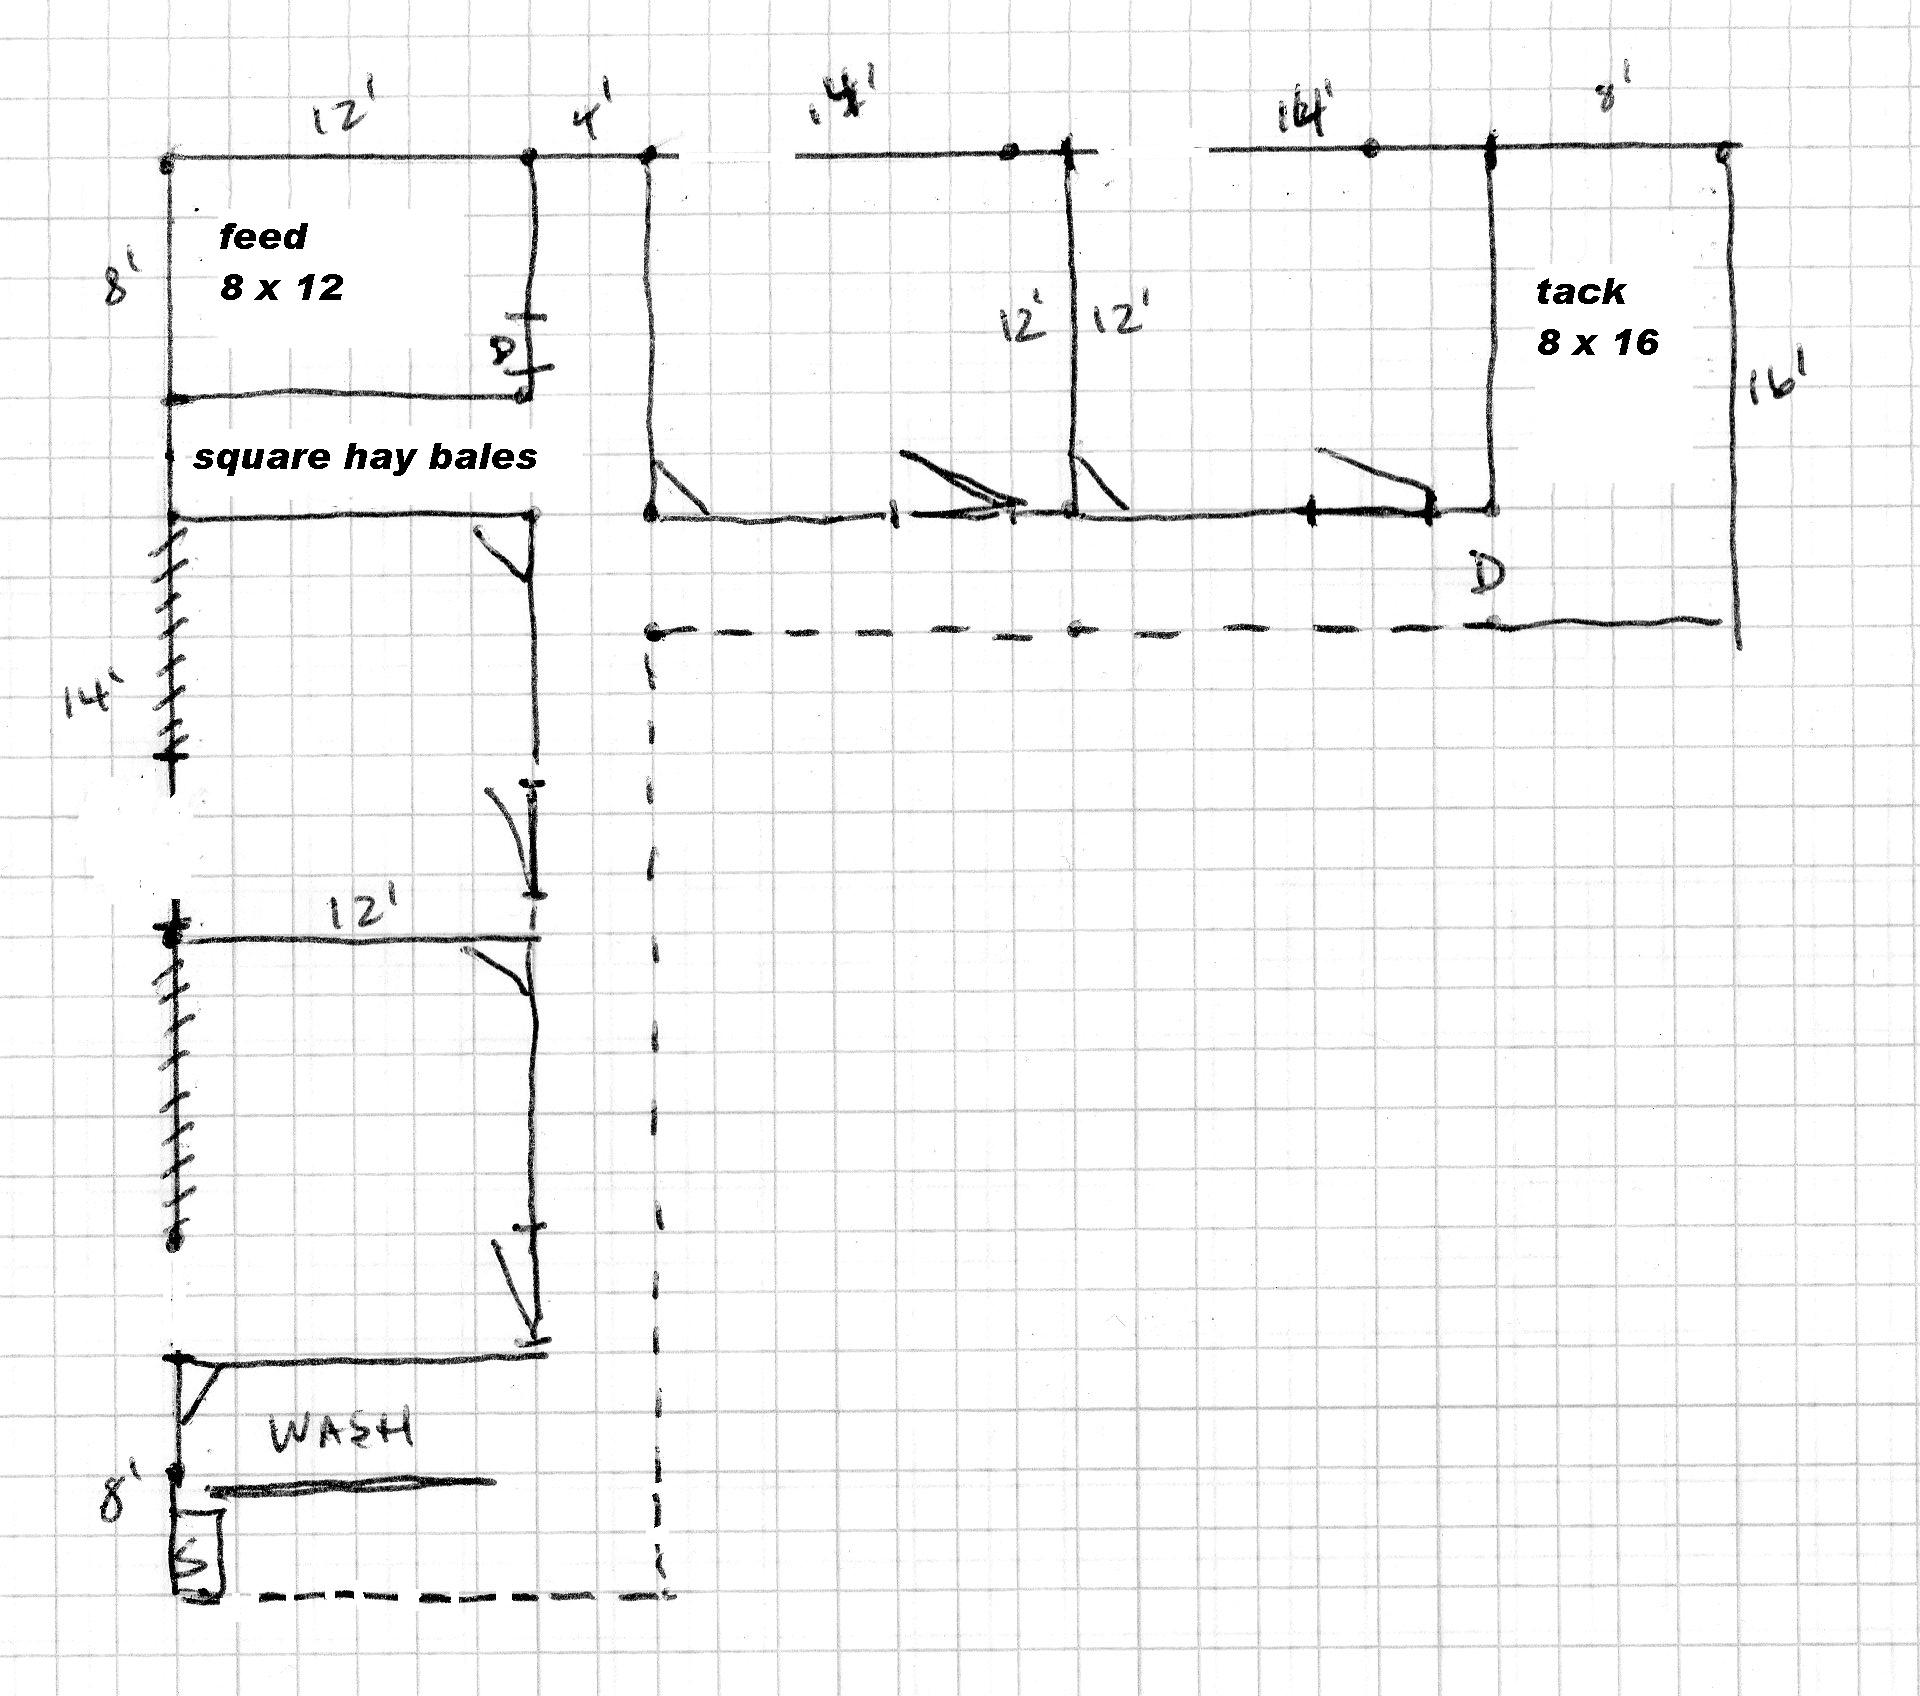 Barn shaped shed plans gambrel